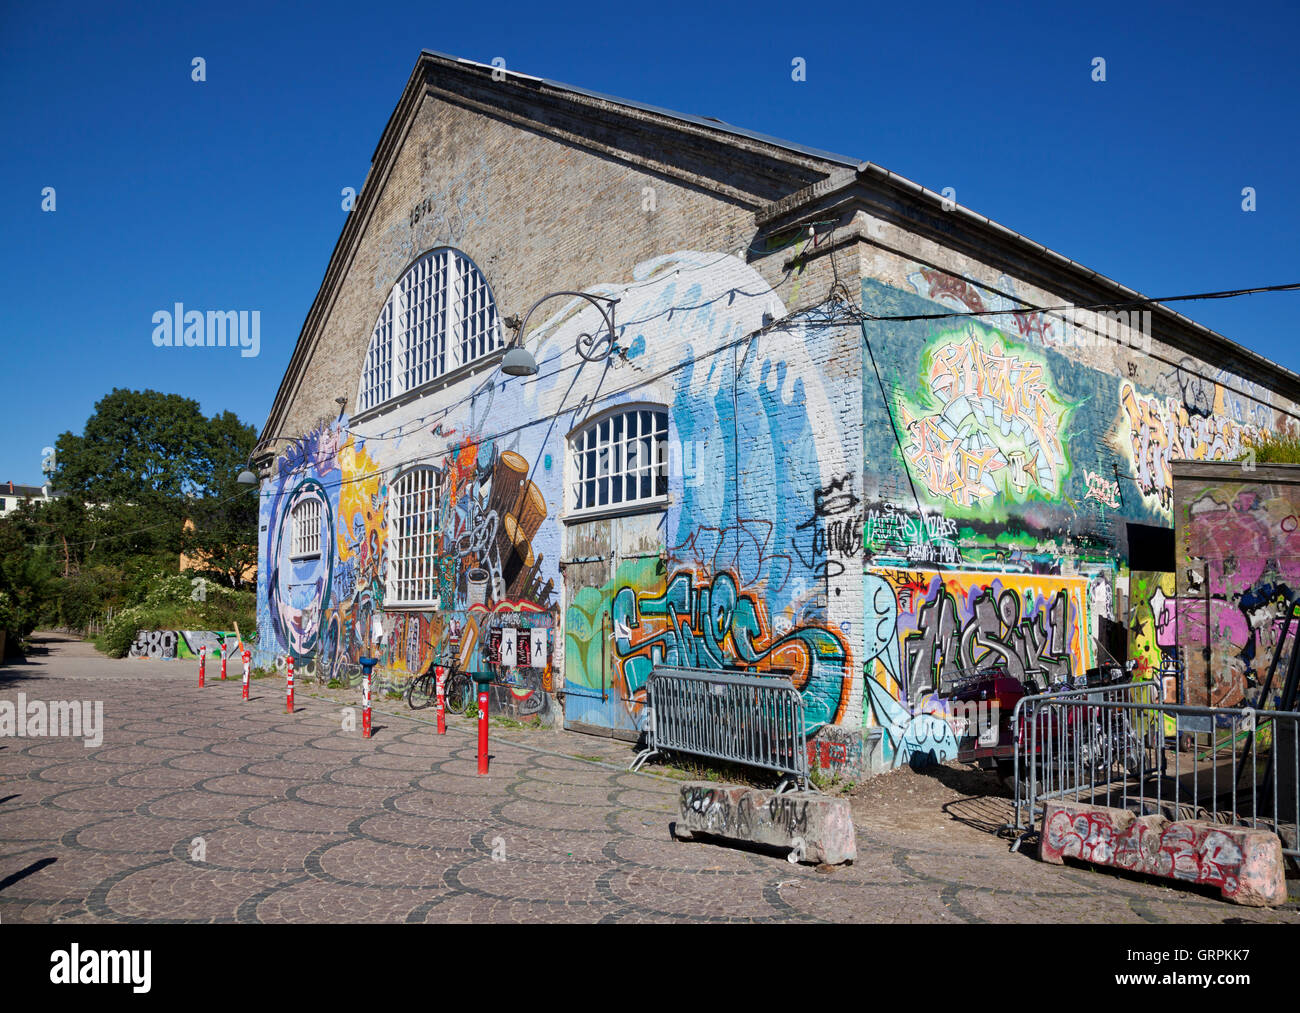 Den grå hal, the Grey Hall, in freetown Christiania, Copenhagen - Stock Image